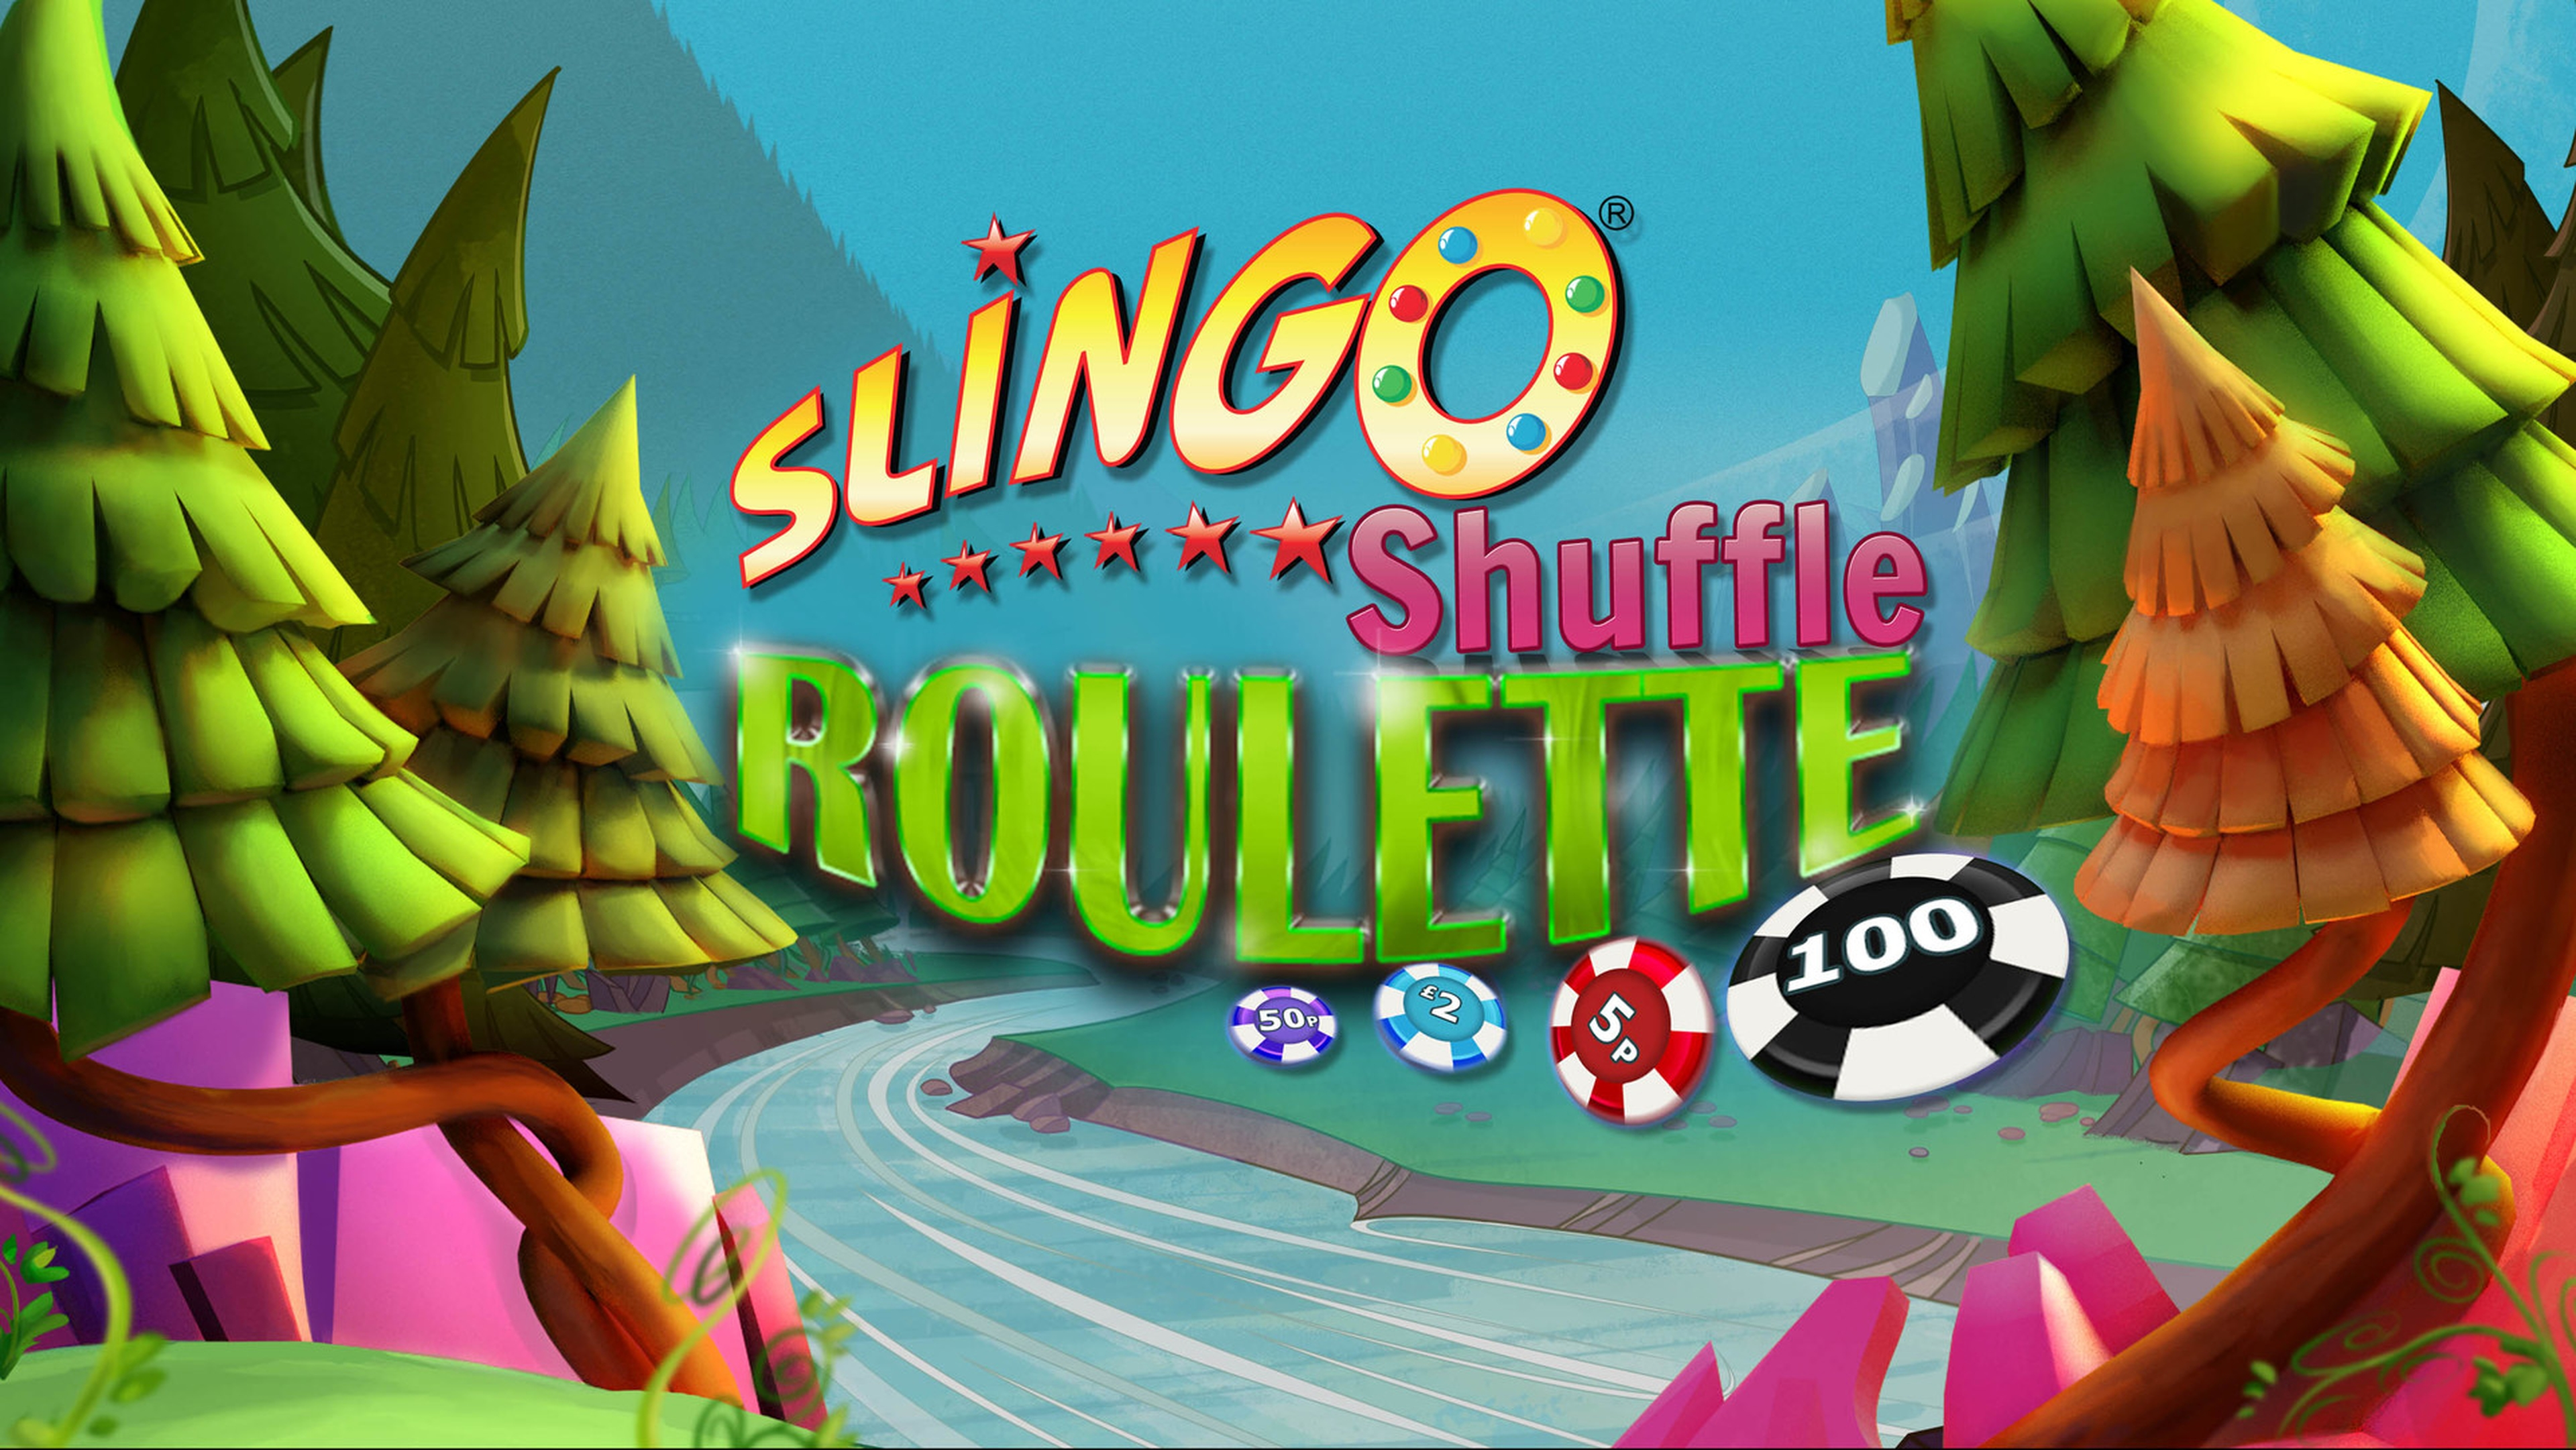 The Slingo Shuffle Roulette Online Slot Demo Game by Slingo